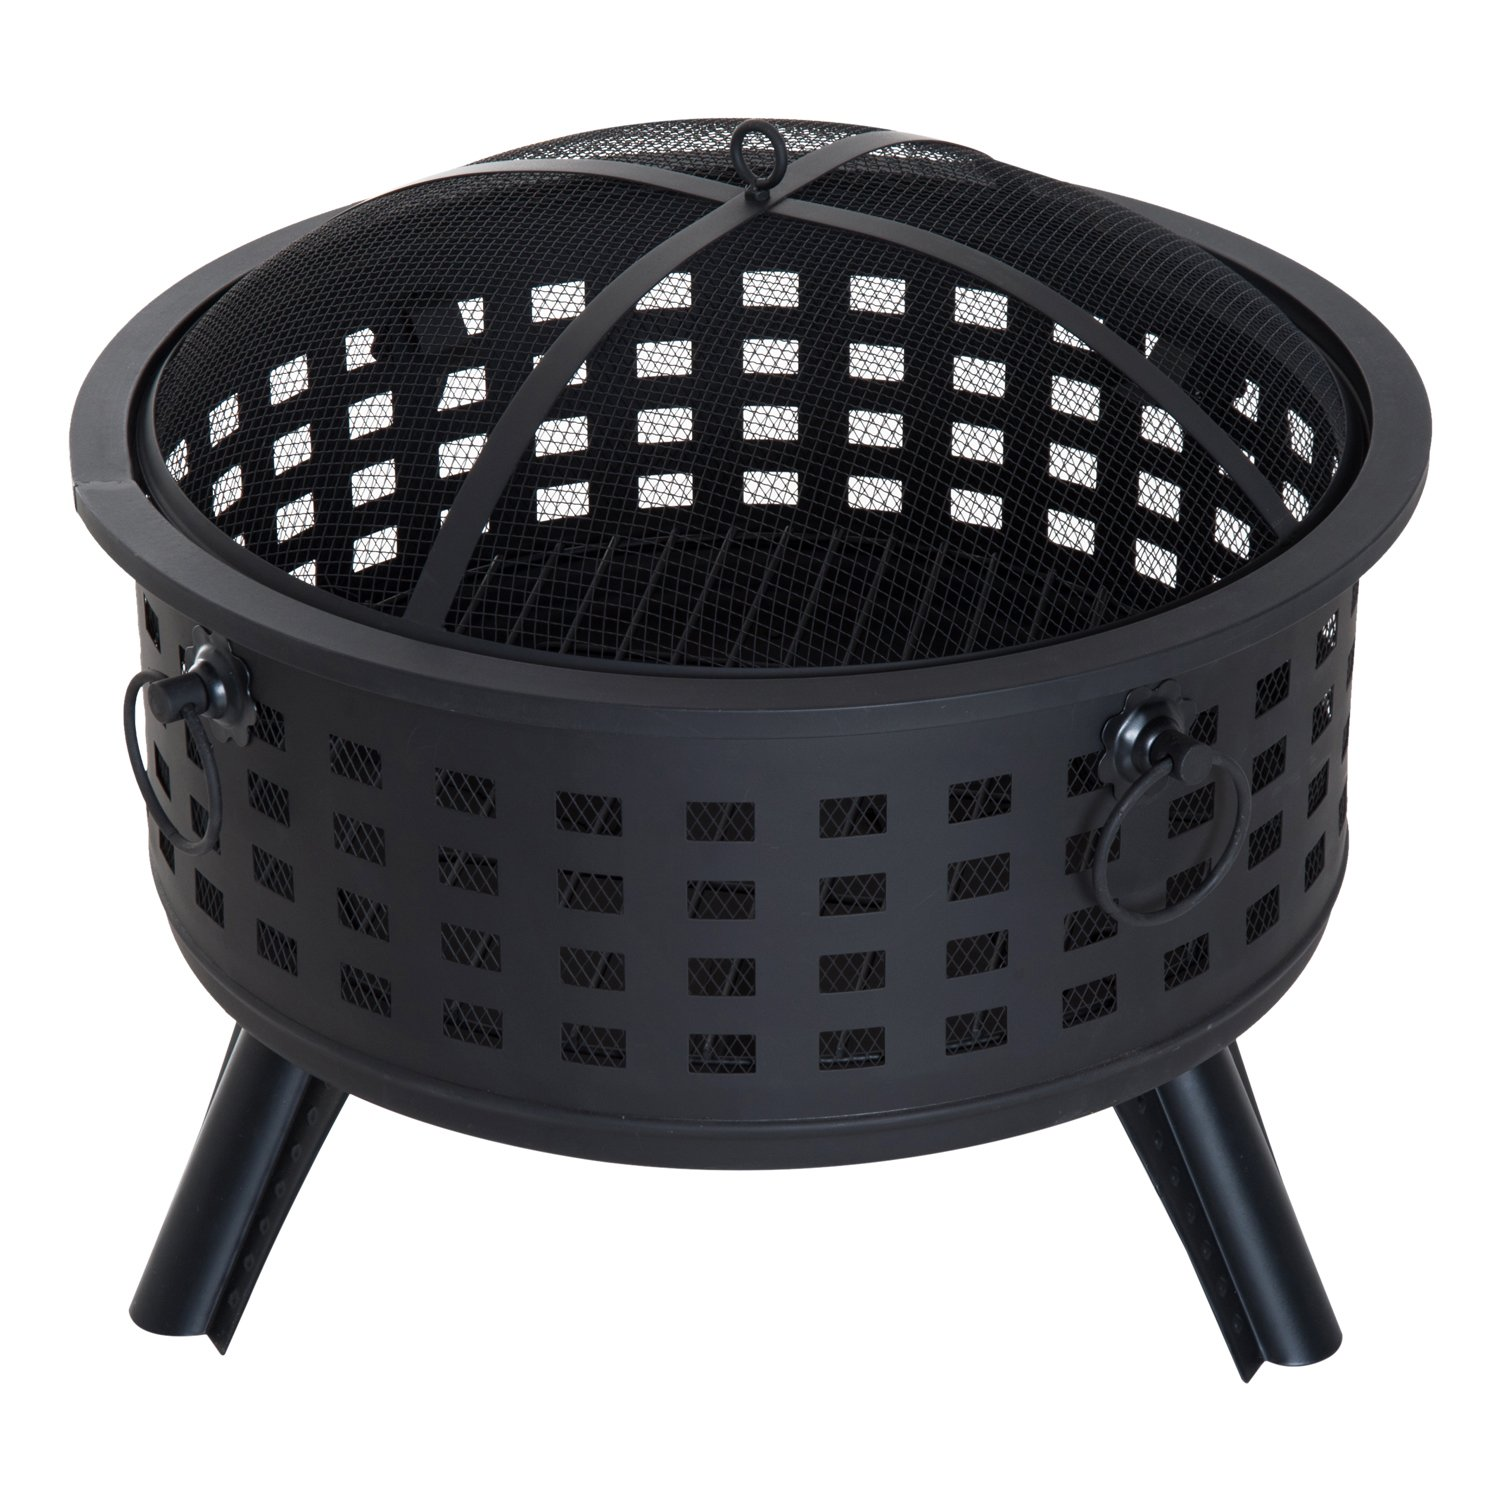 Outsunny 26'' Round Steel Patio Backyard Wood Burning Fire Pit% With Lattice Design and Accessories